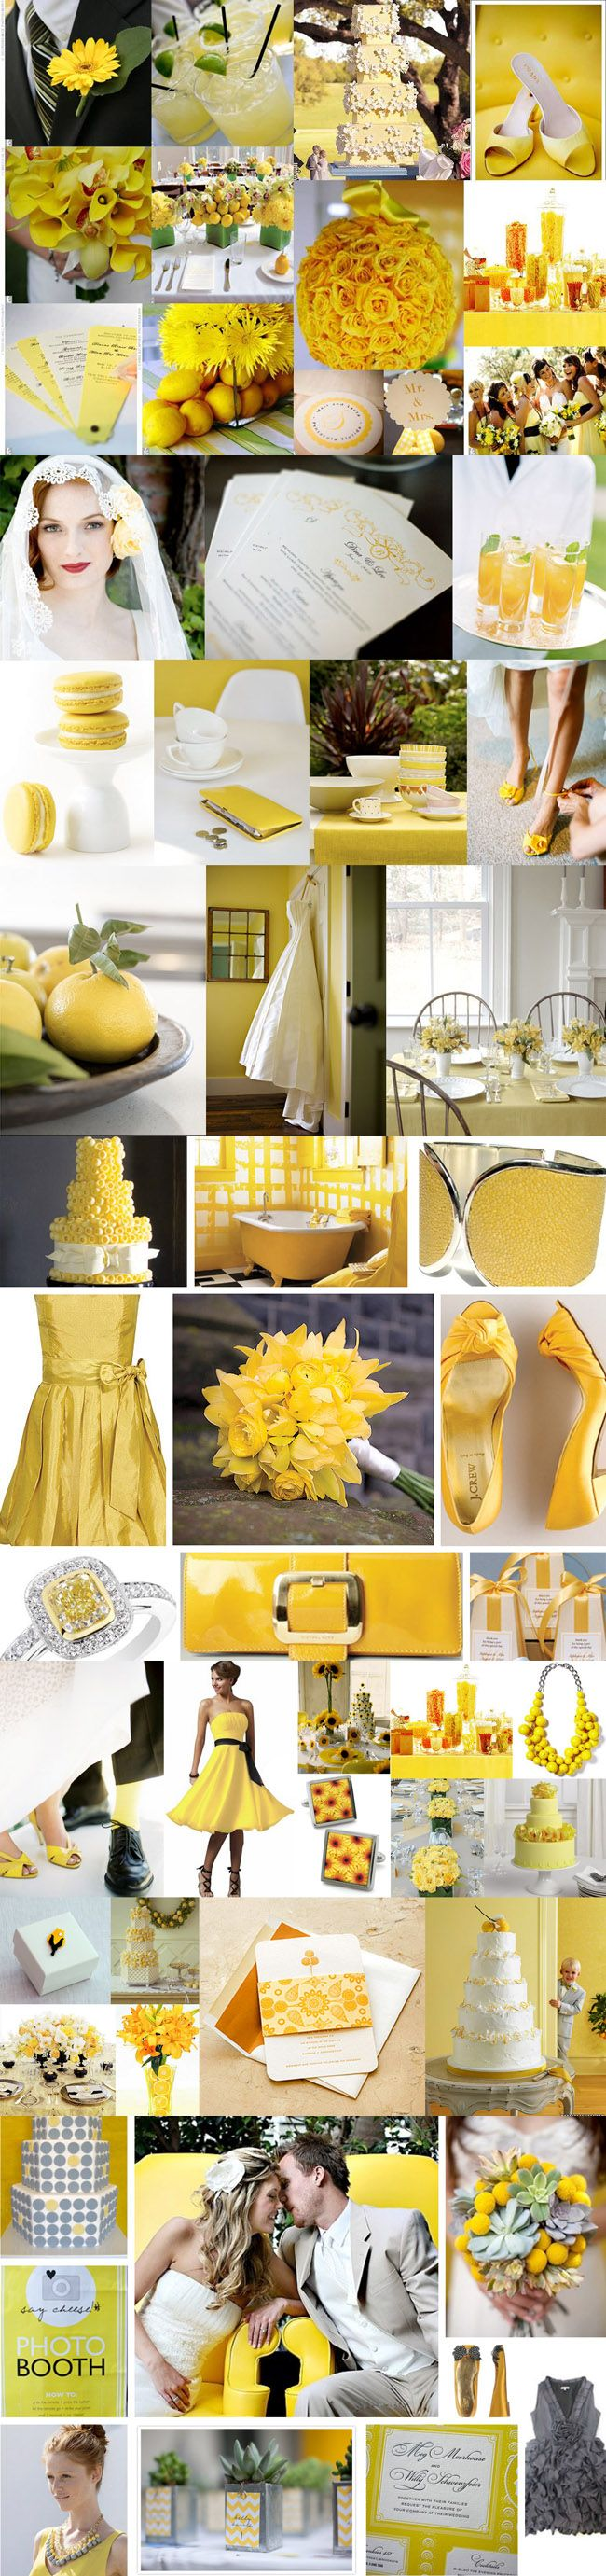 Wedding decorations yellow and gray  wedding inspiration yellow  Two down one to go  Pinterest